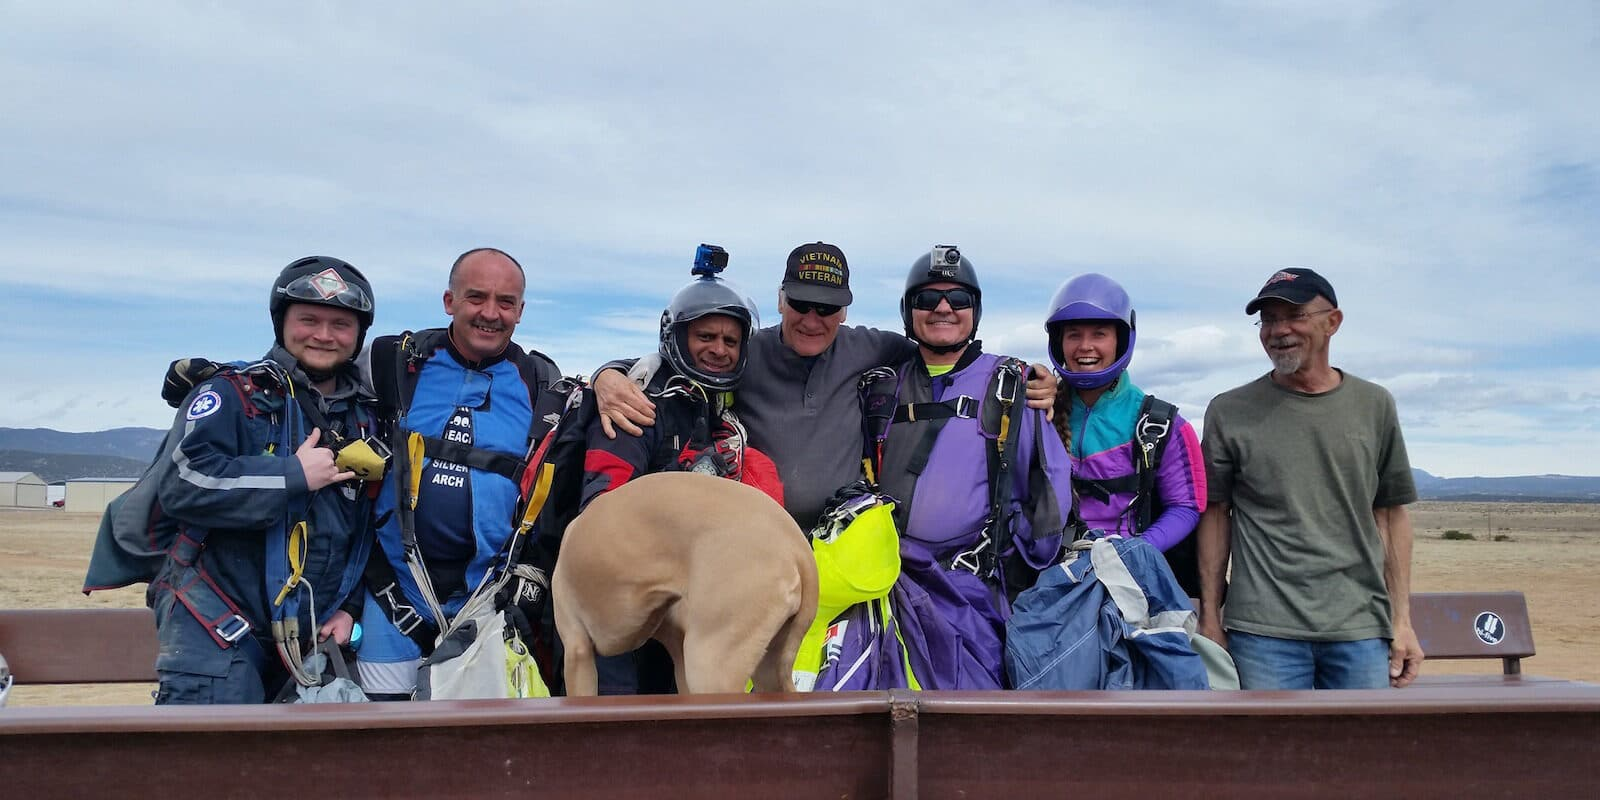 Image of the jump team from High Sky Adventures Parachute Club in Colorado